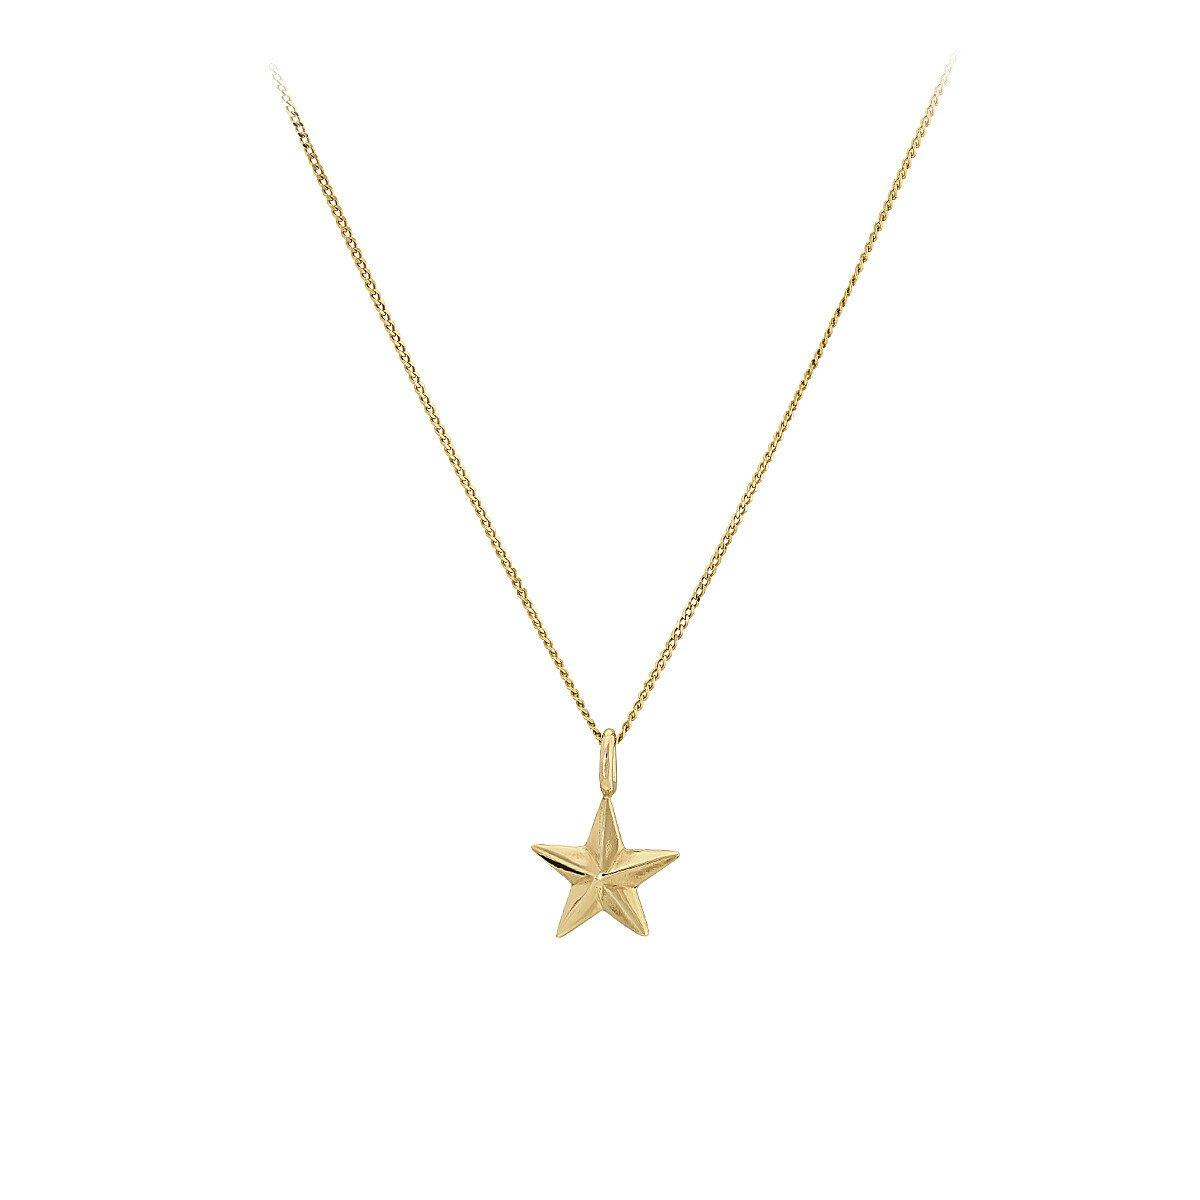 Vega Star Yellow 9ct Gold Necklace - The Collective Dublin